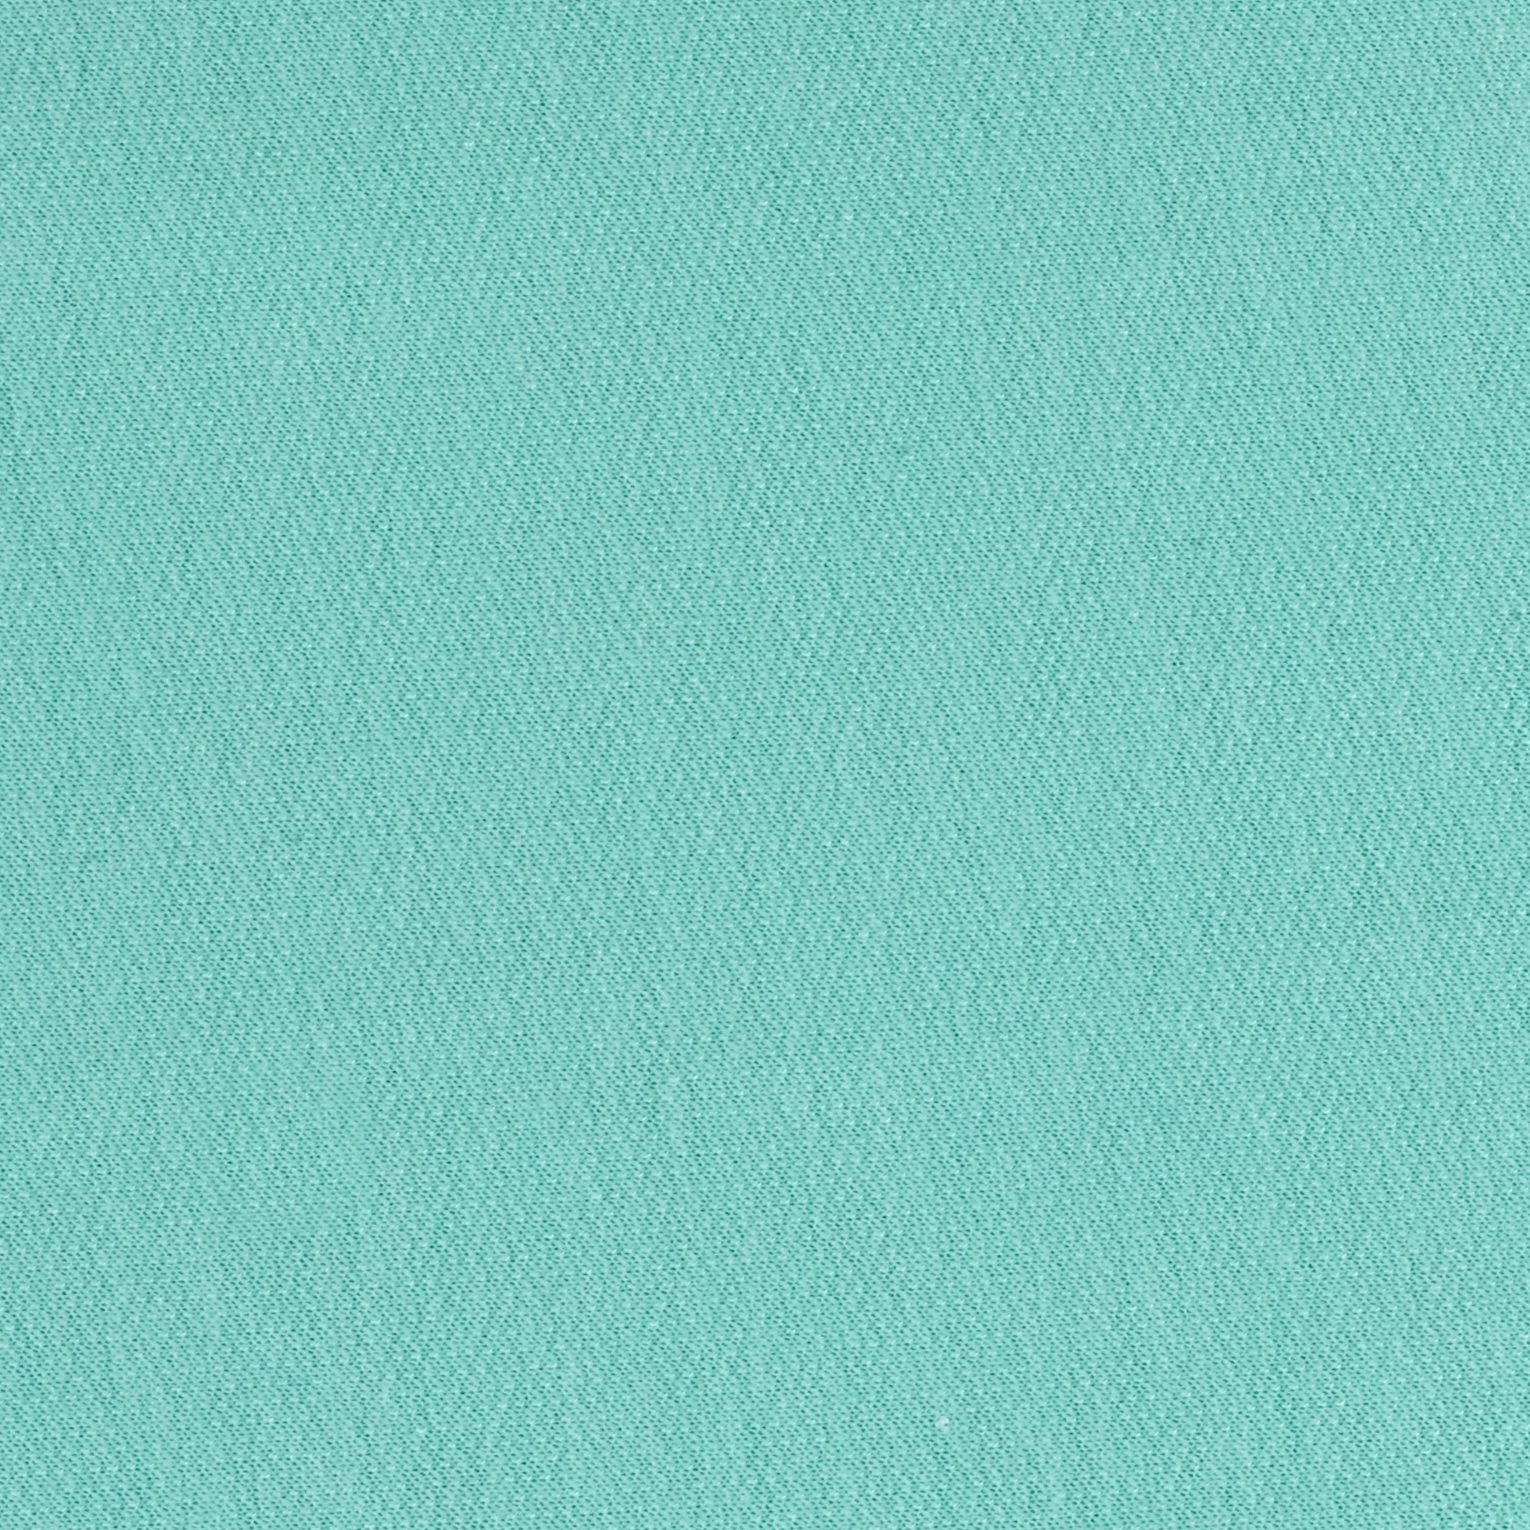 French Terry Mint Fabric by Stardom Specialty in USA